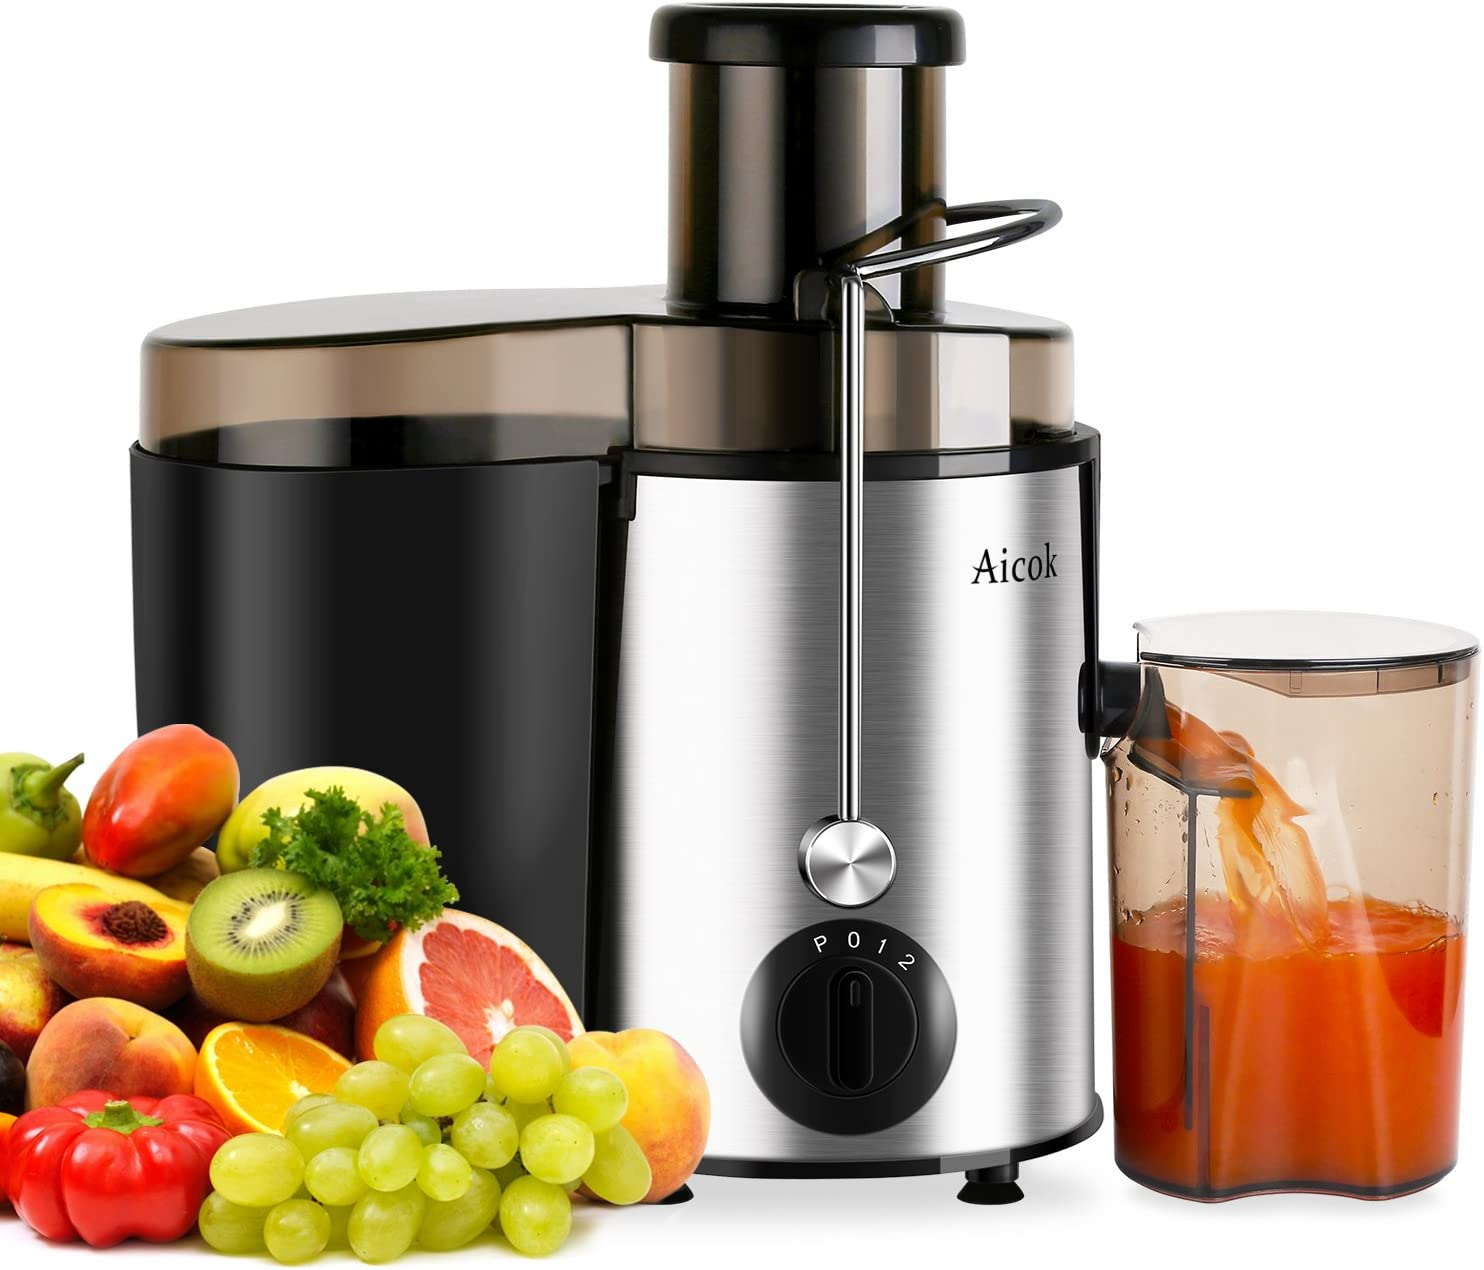 39 Best Enjoy always fresh juice with the juicer images